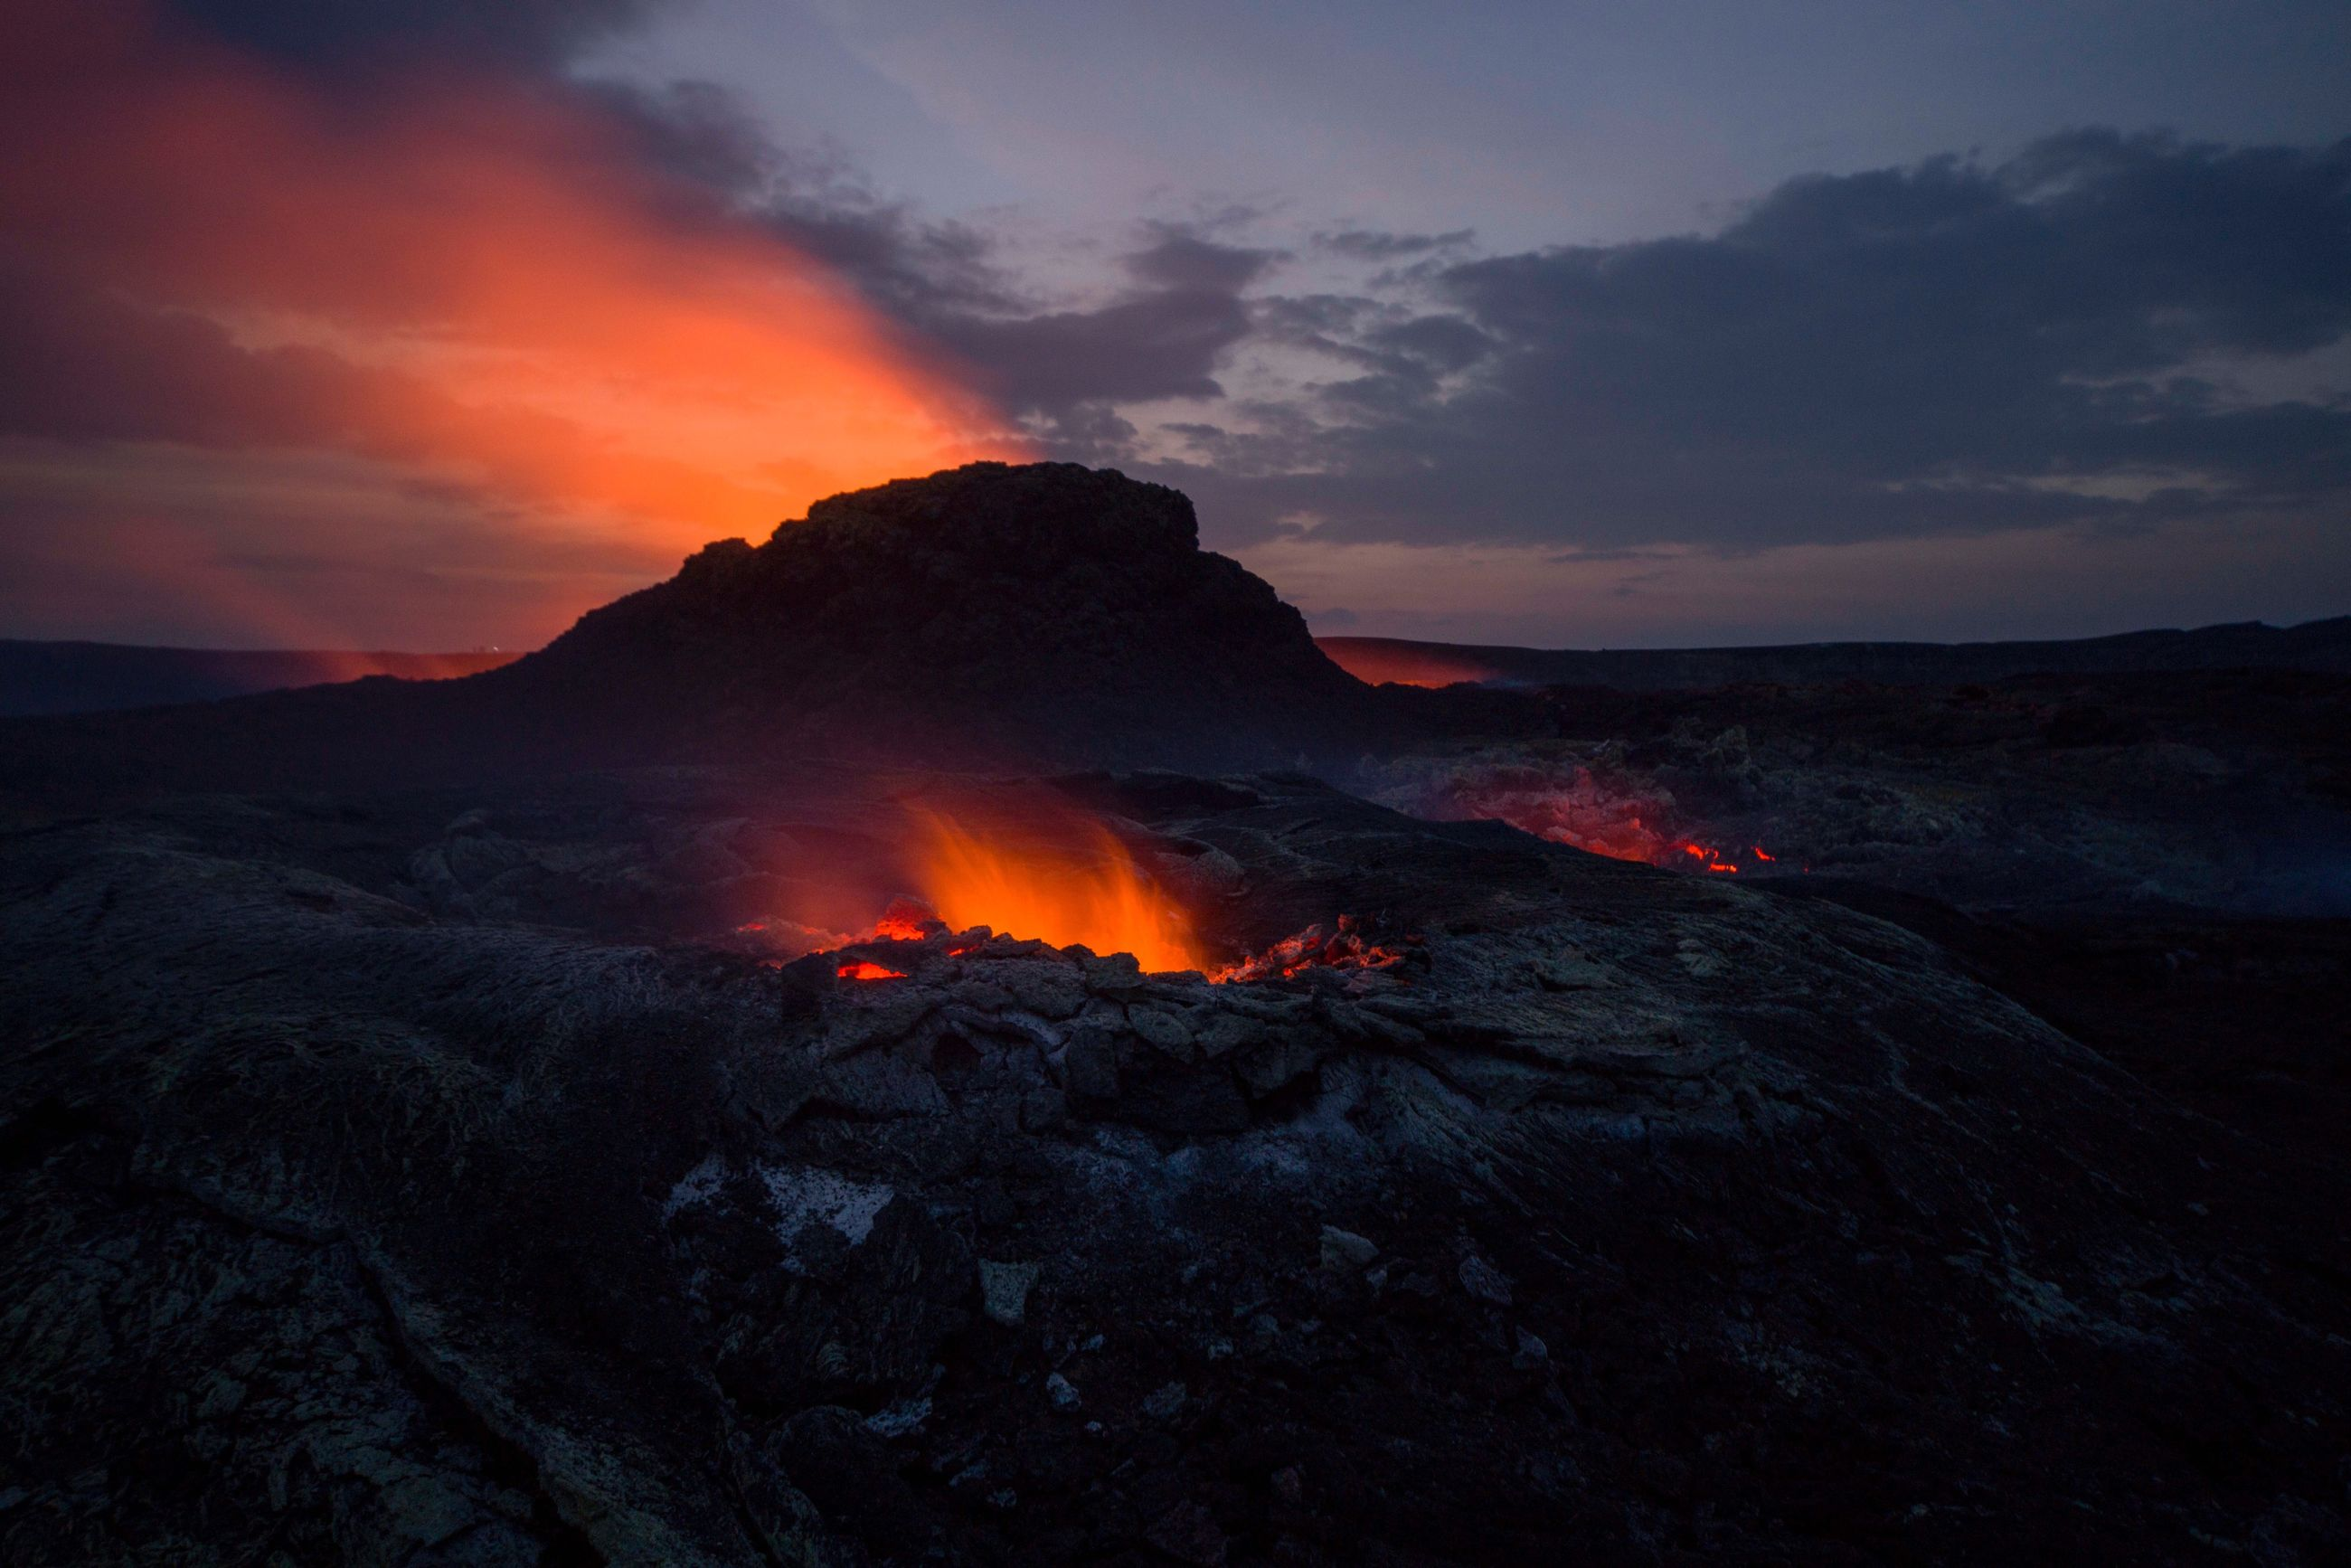 sky, cloud - sky, lava, volcano, heat - temperature, mountain, beauty in nature, geology, orange color, nature, erupting, power in nature, environment, no people, power, scenics - nature, non-urban scene, land, physical geography, smoke - physical structure, outdoors, volcanic crater, flowing